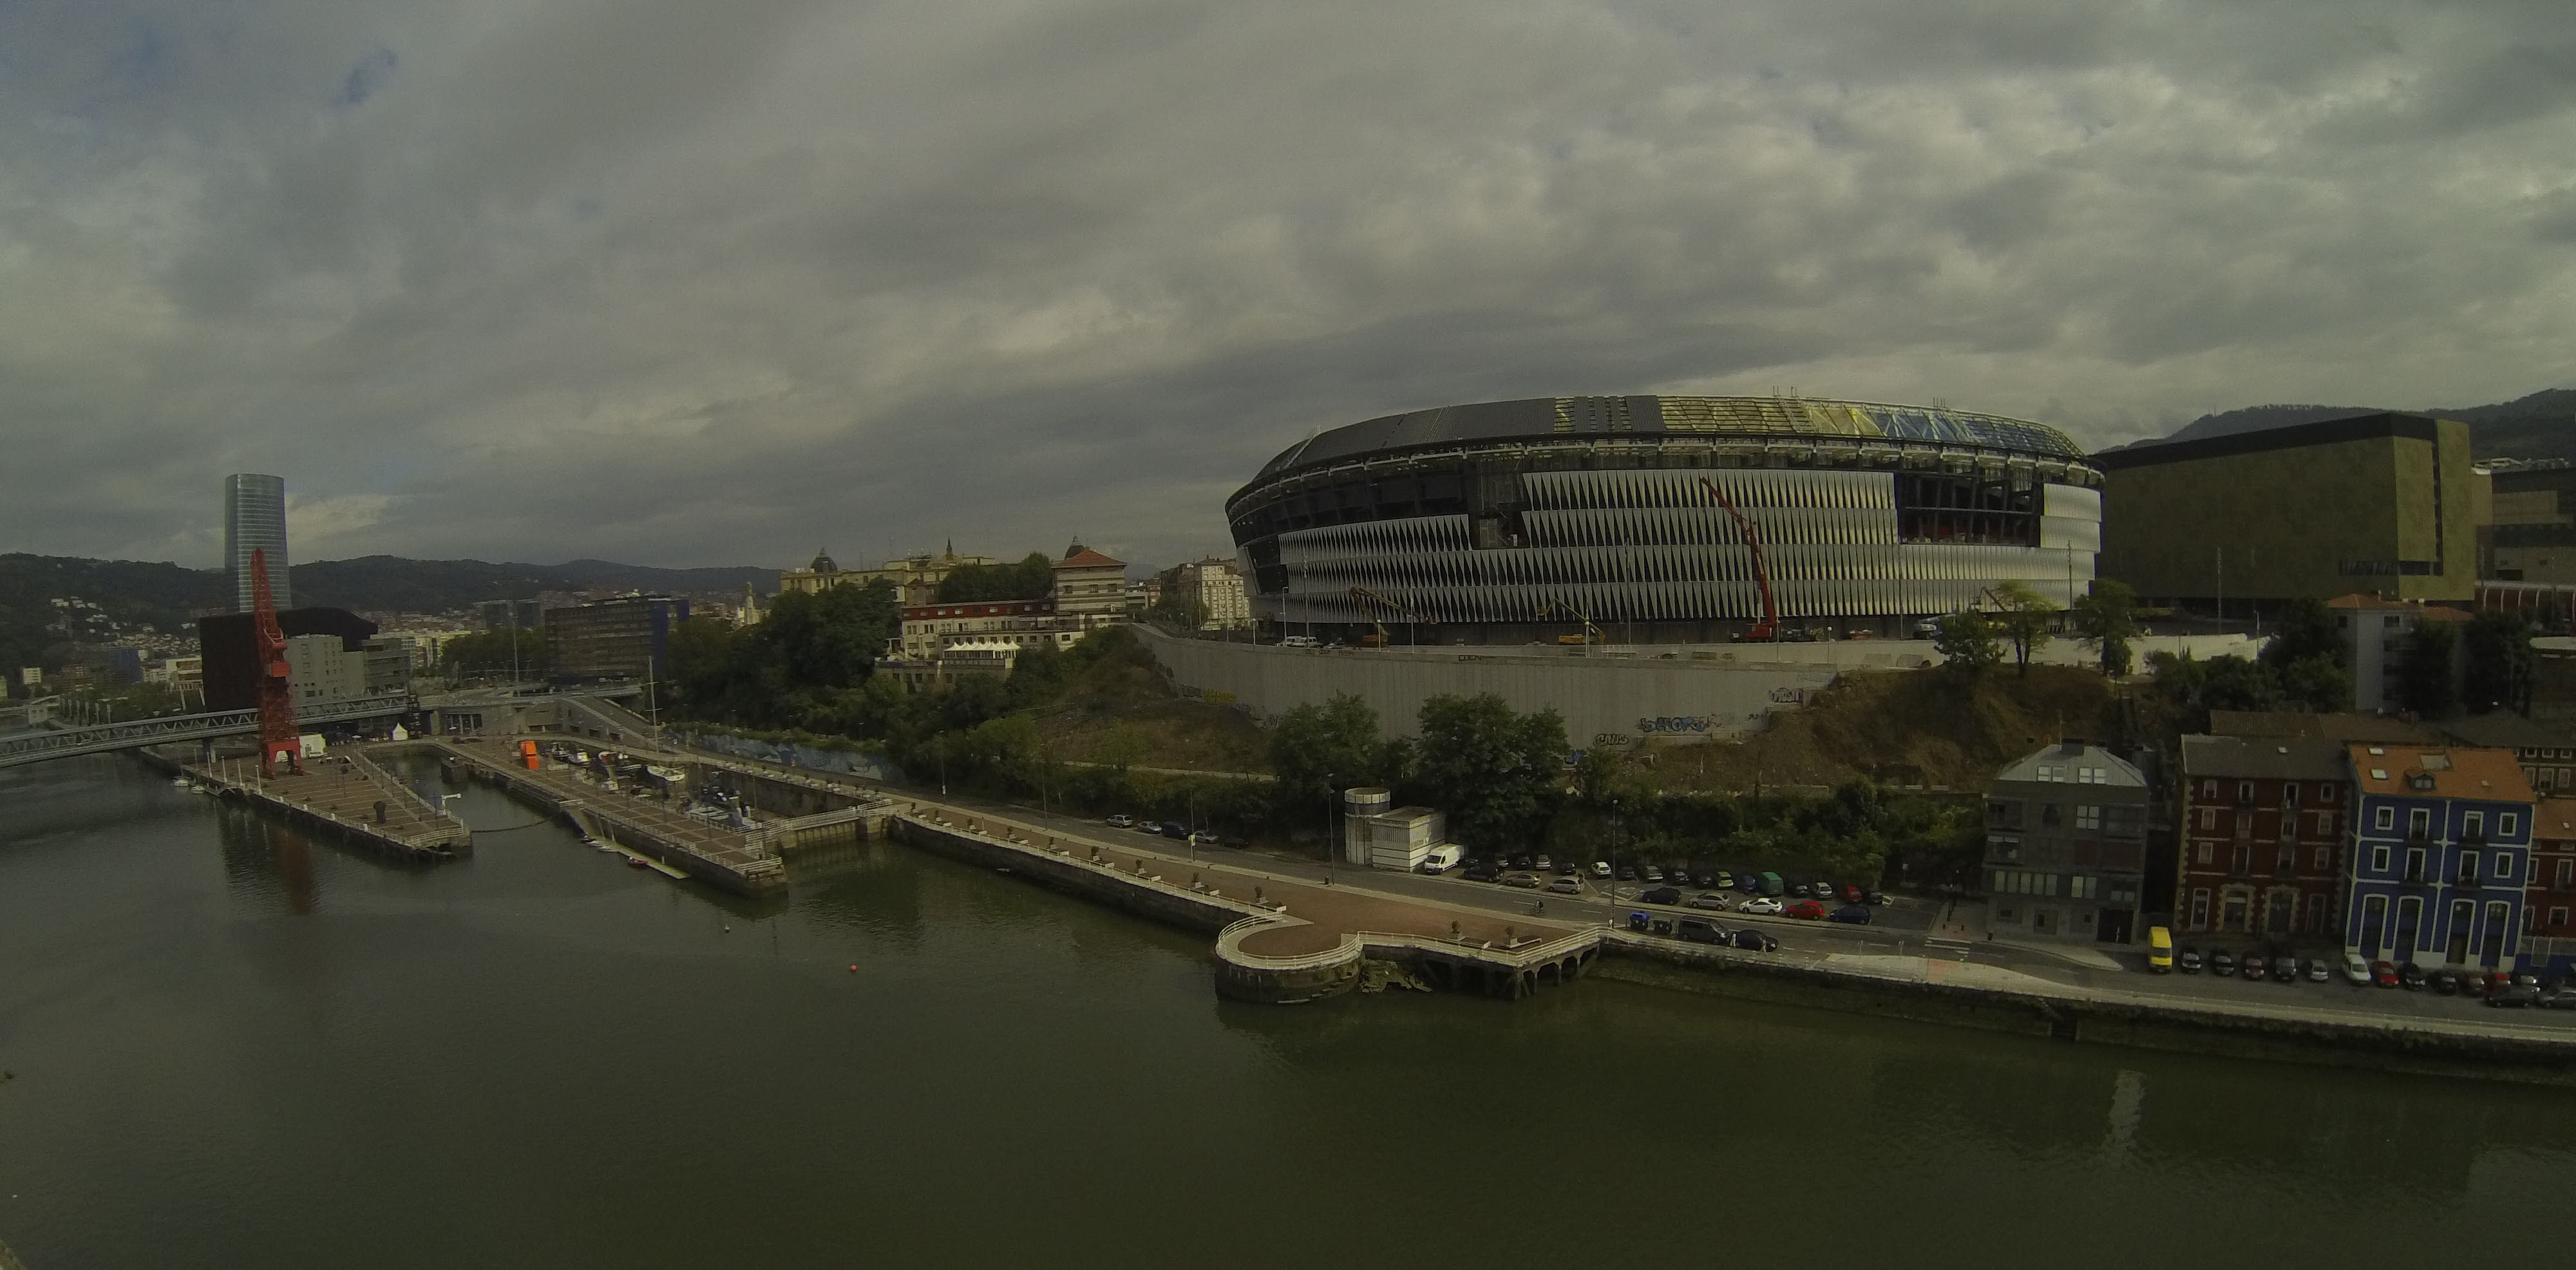 The new San Mamés stadium will bring a strong boost to the Athletic Club of Bilbao.